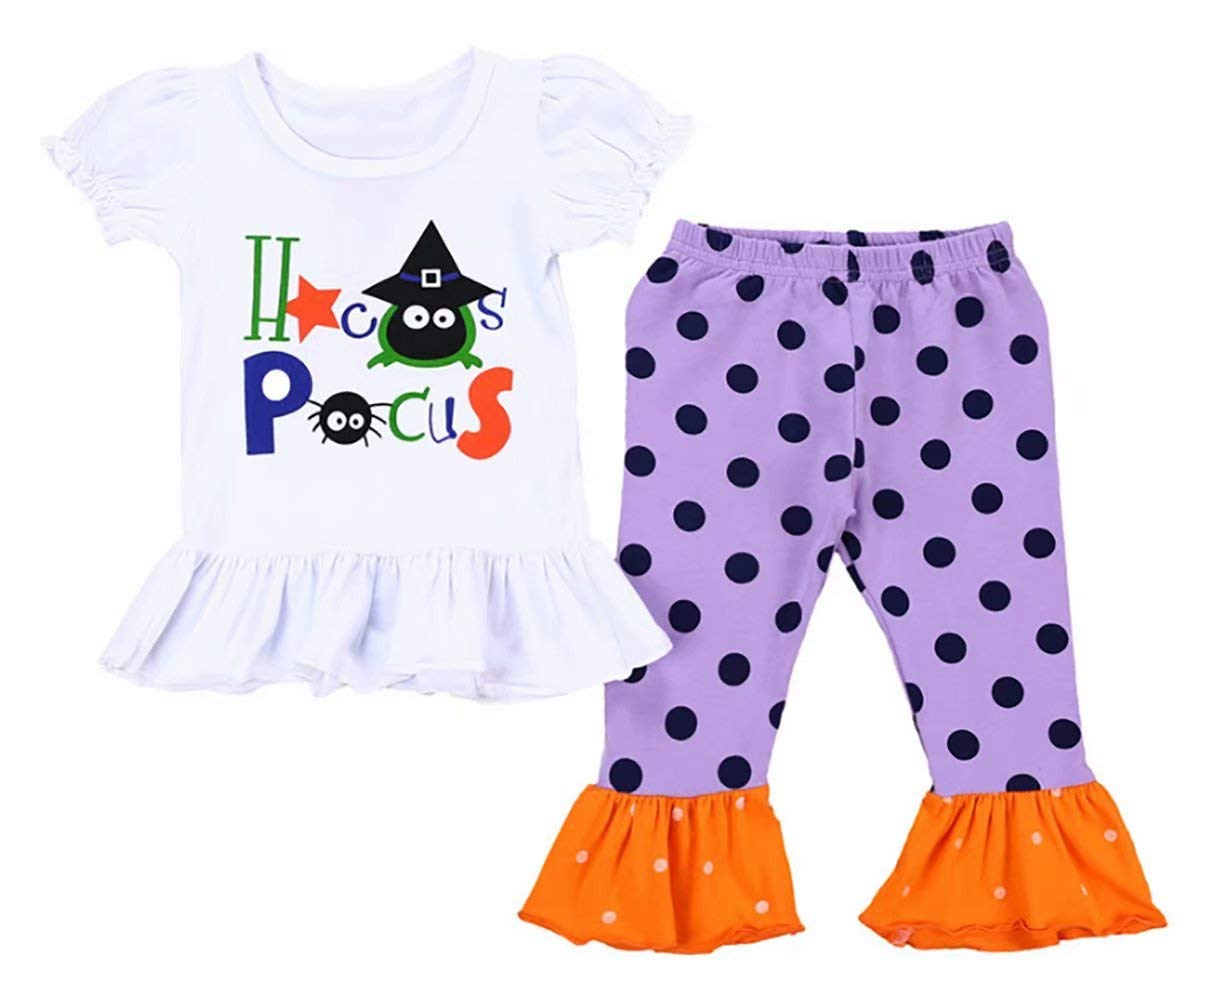 UNIQUEONE 2Pcs Toddler Girls Halloween Outfits Hocus Pocus T-Shirt Tops+Polka Dot Bellbottoms Pants Size 18-24 Months/Tag100 (White)